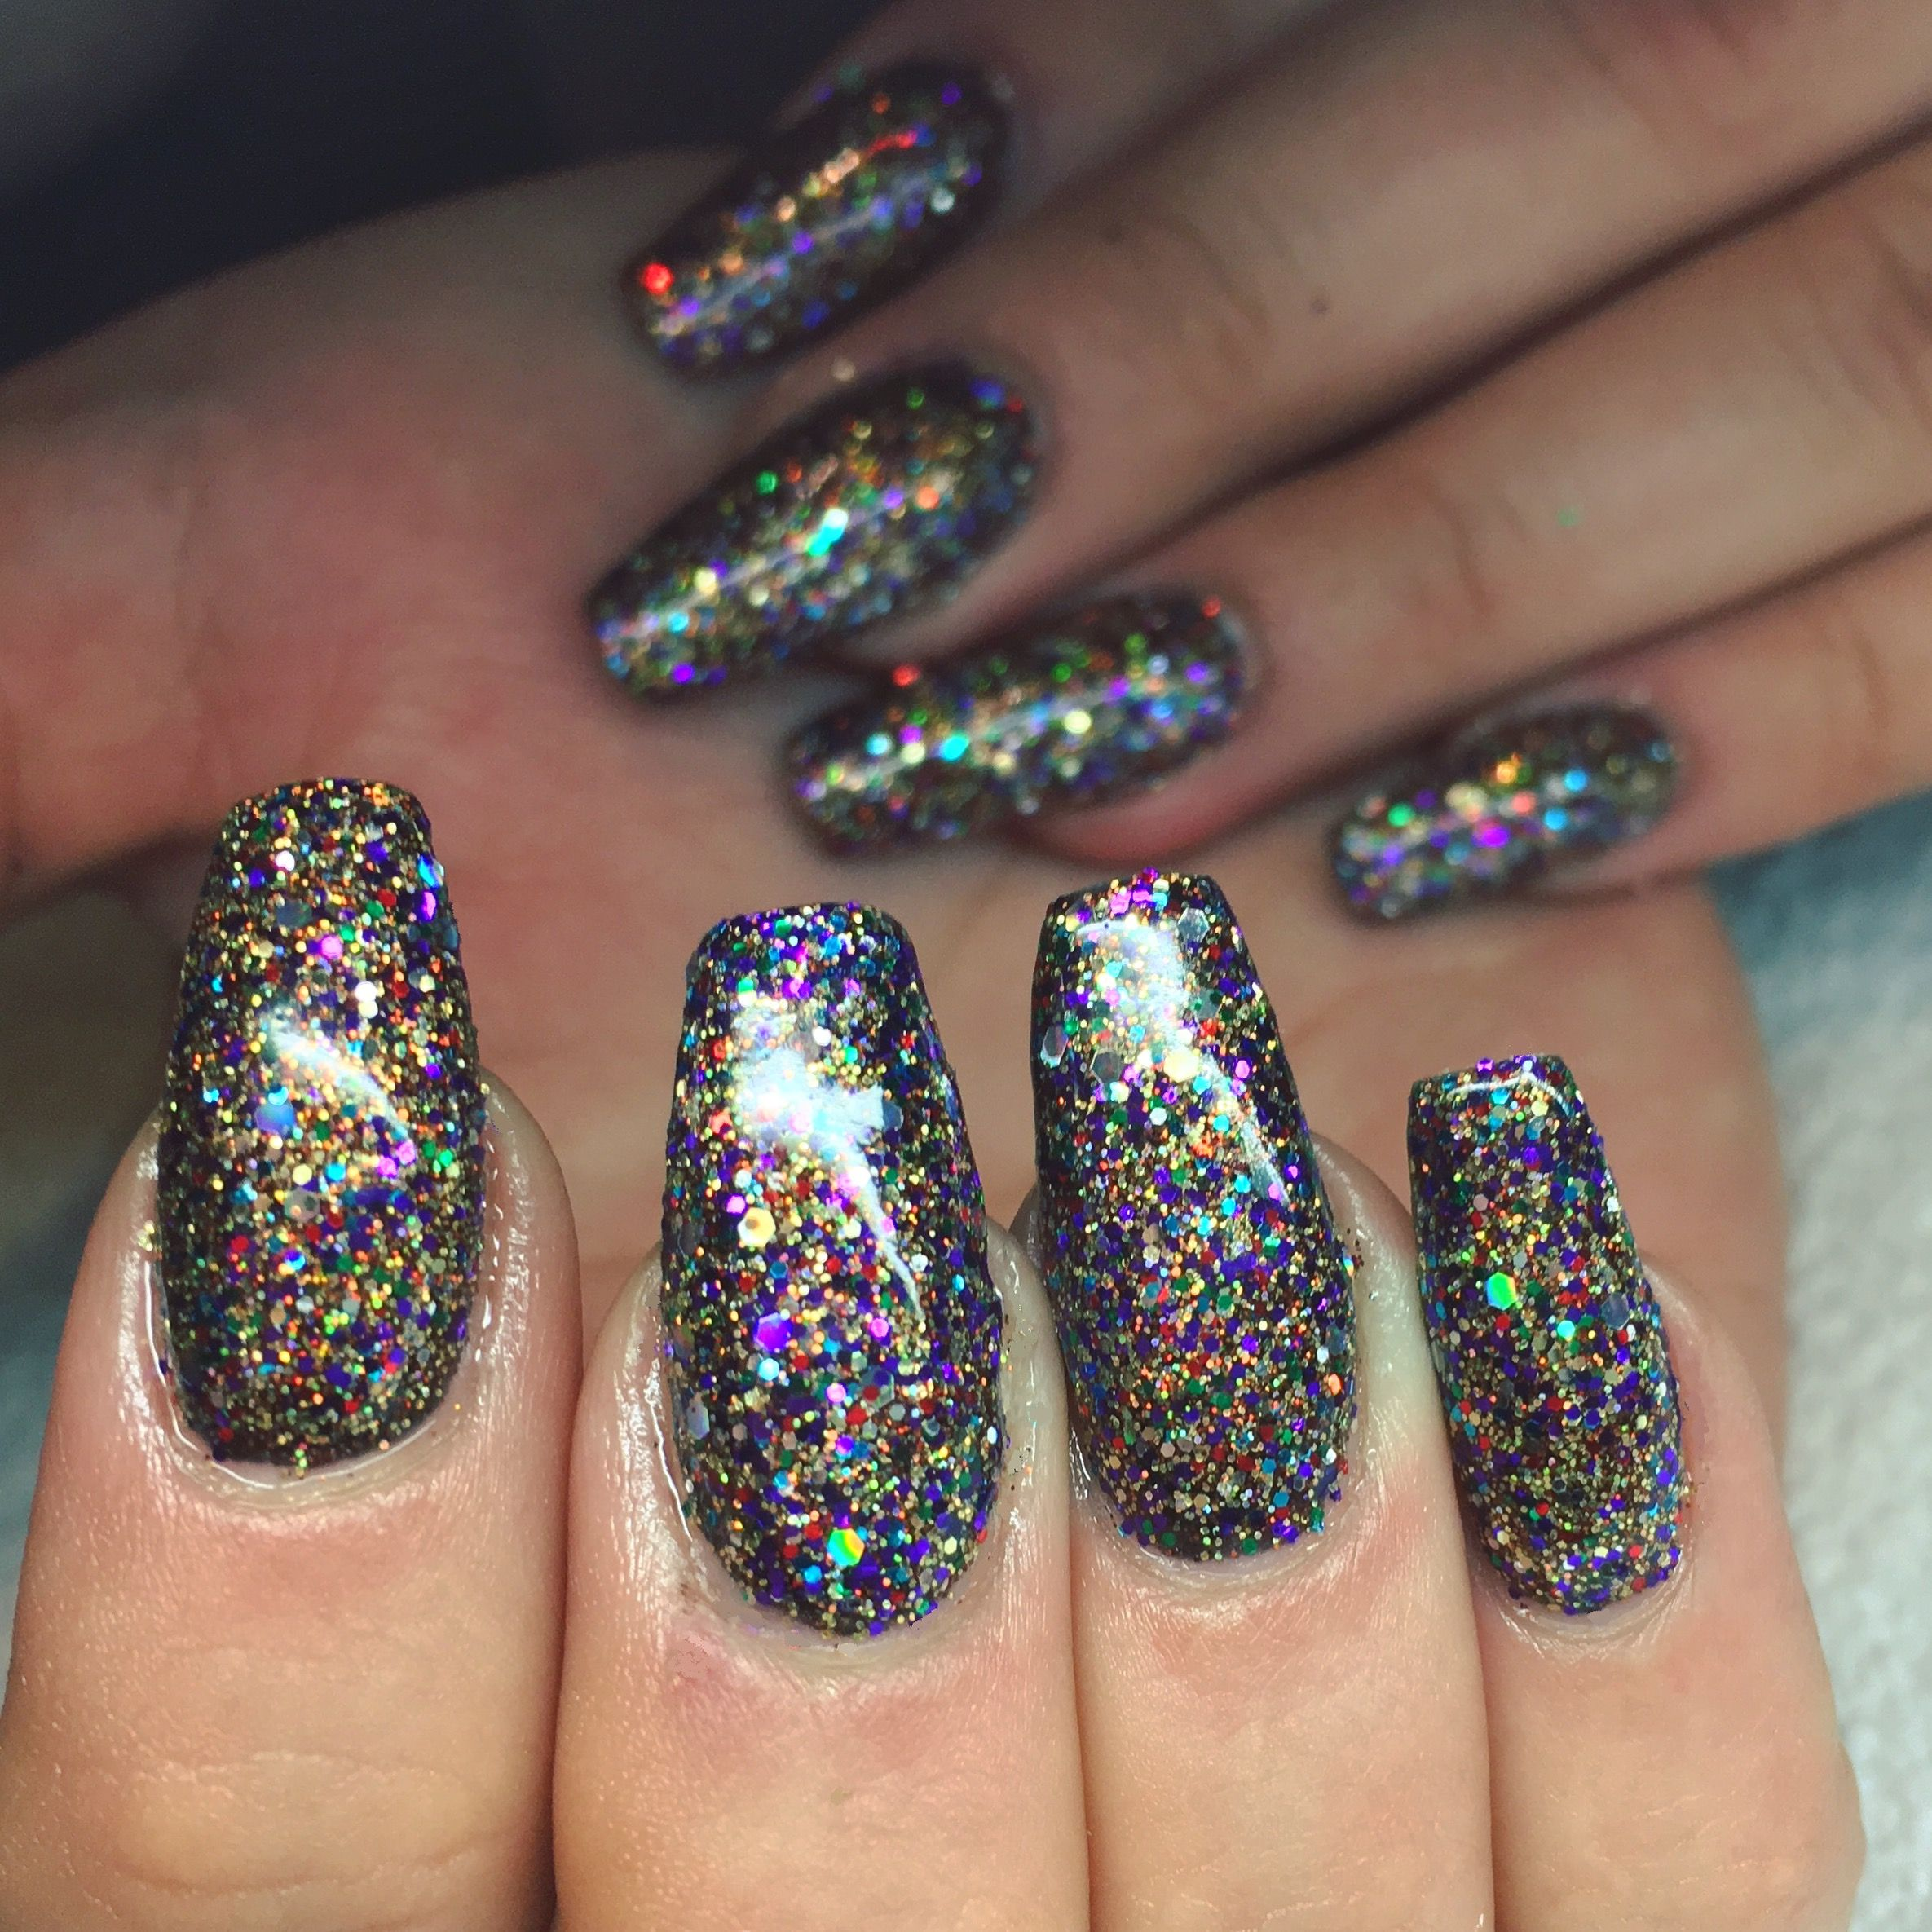 CND Shellac Lecente MultiGlitz Starlet Glitter Nails | Beauty ...